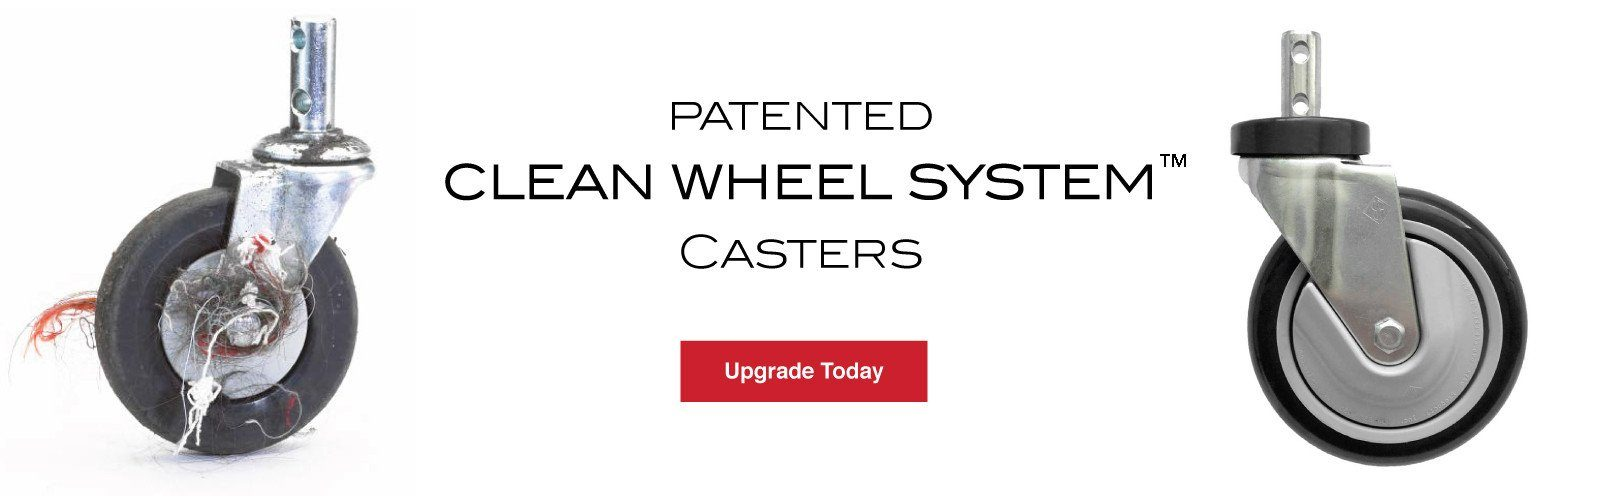 Patented Clean Wheel System Casters